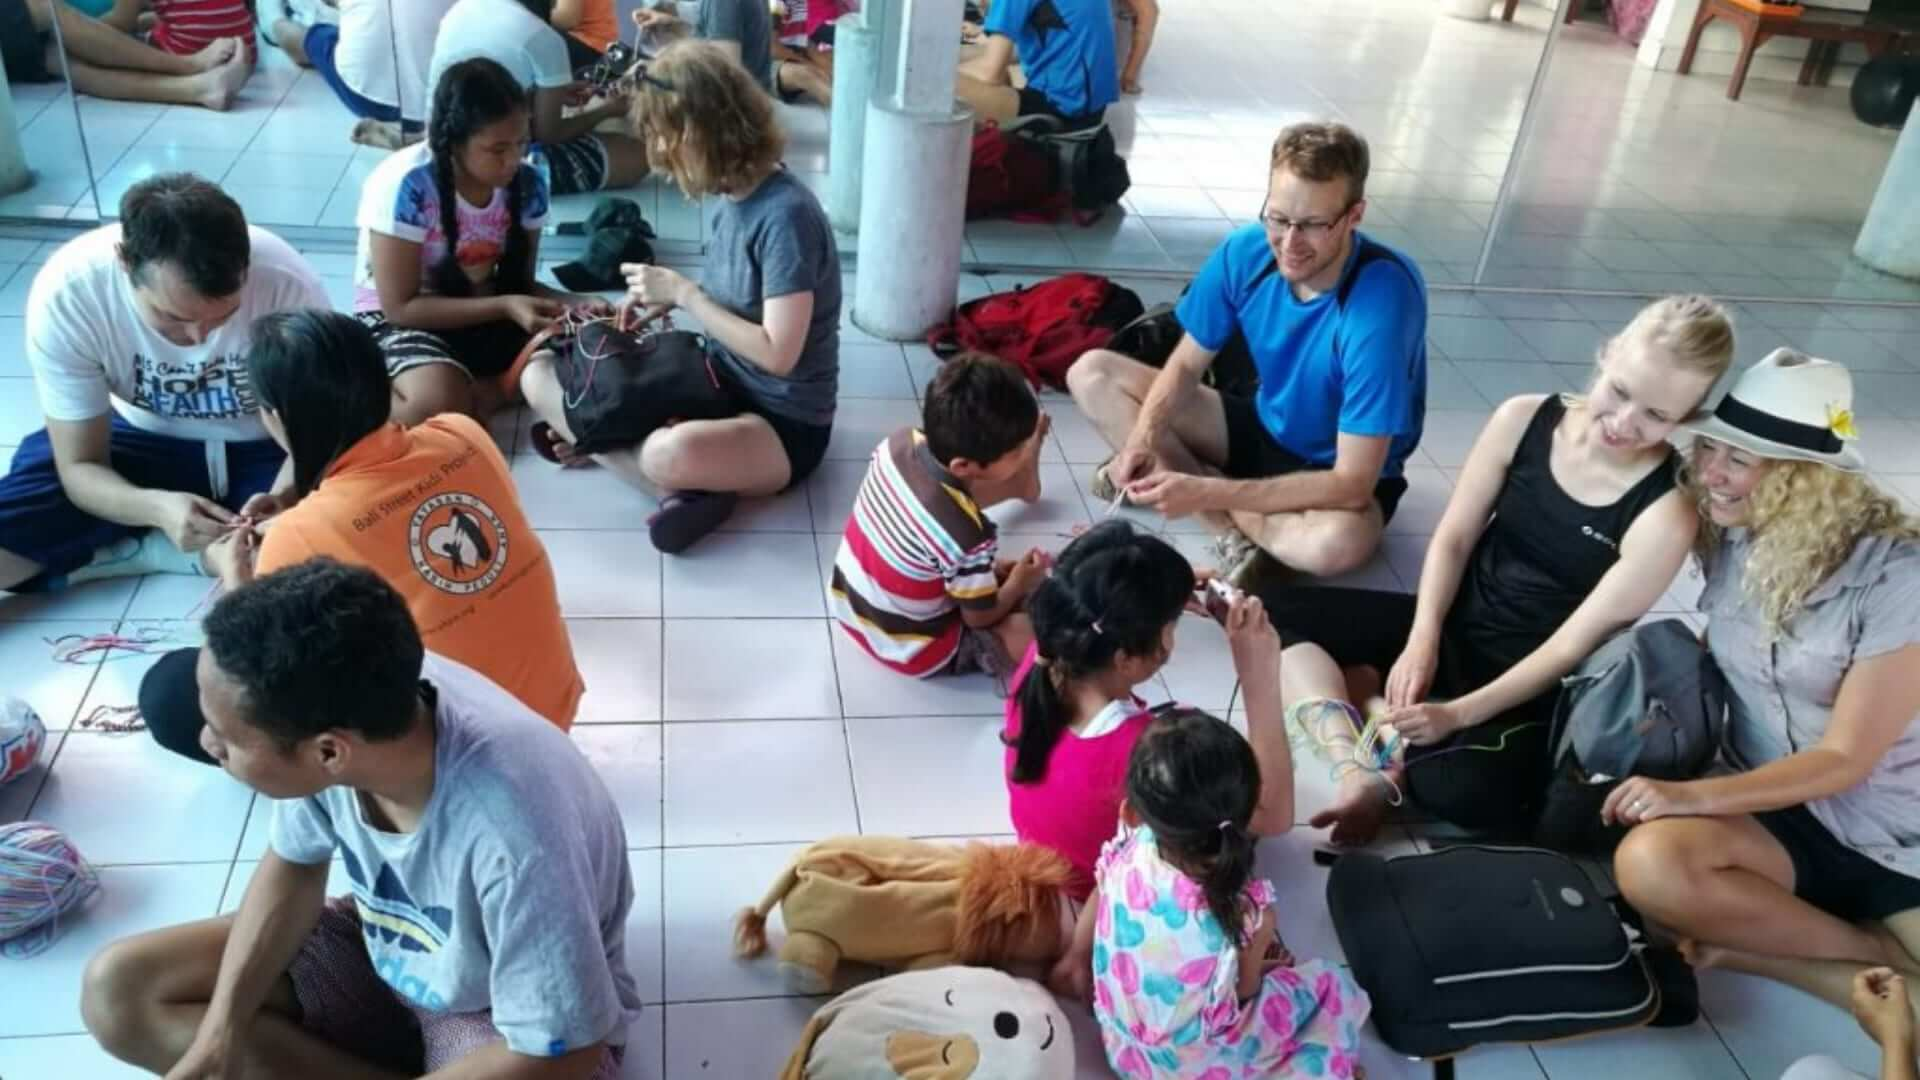 A group of people is sitting on the floor making bracelets with eachother in Bali.